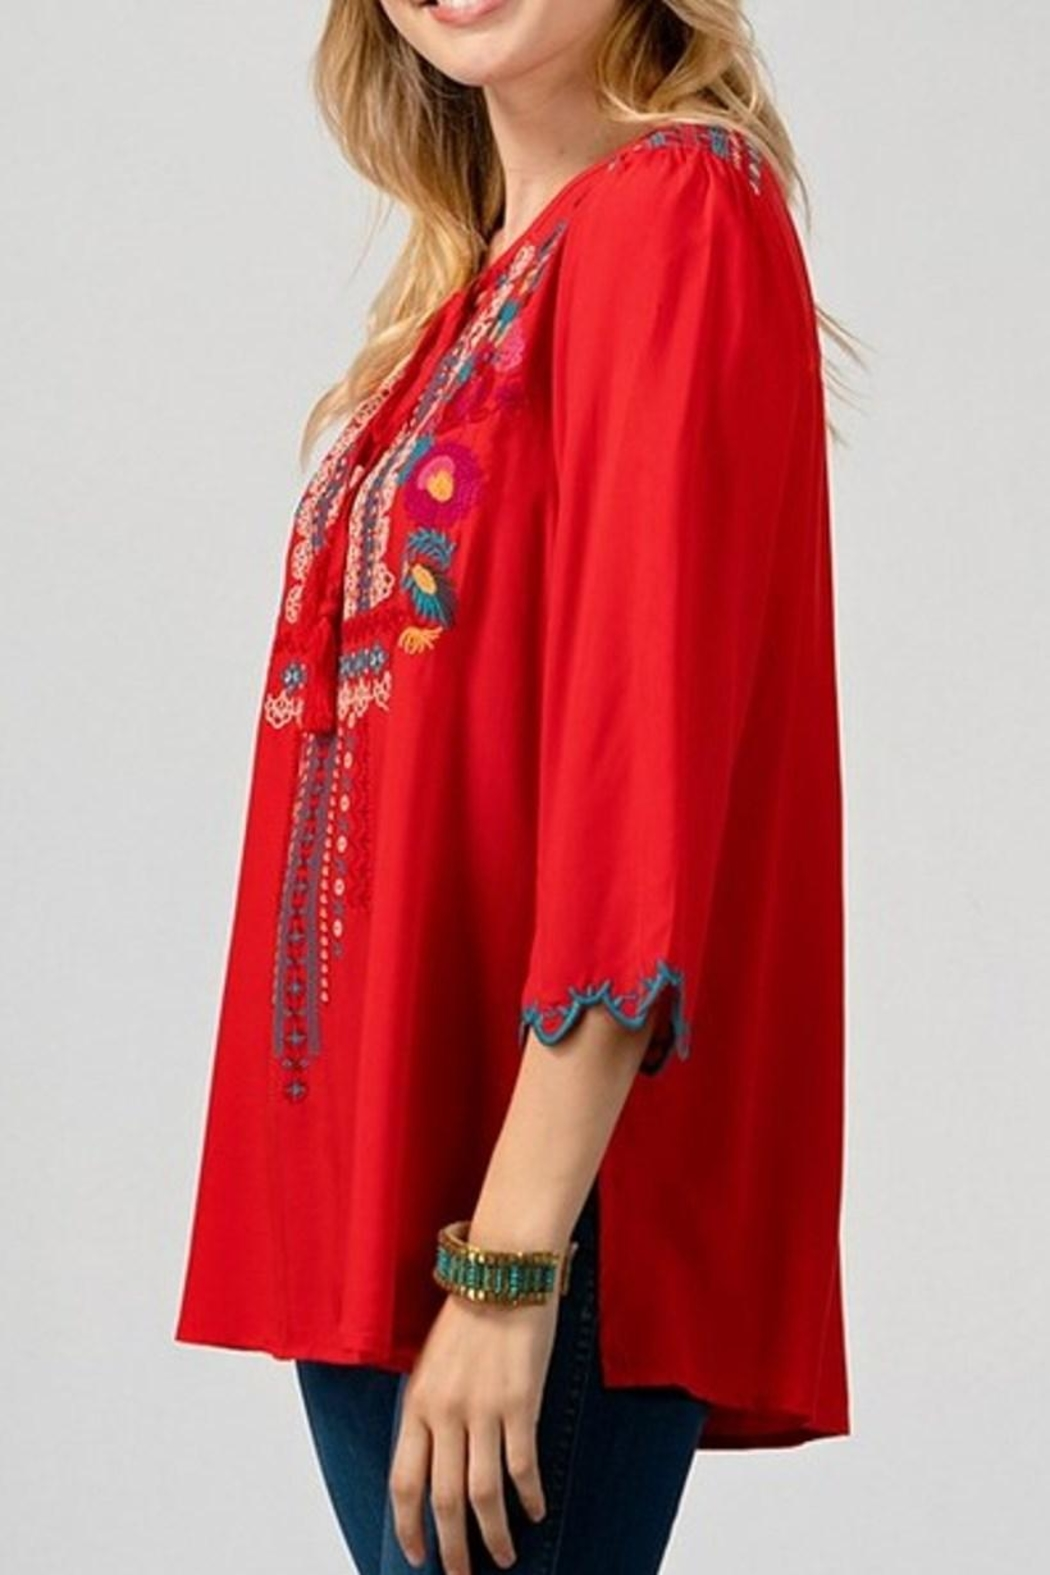 Andree by Unit Red Embroidered Top - Front Full Image